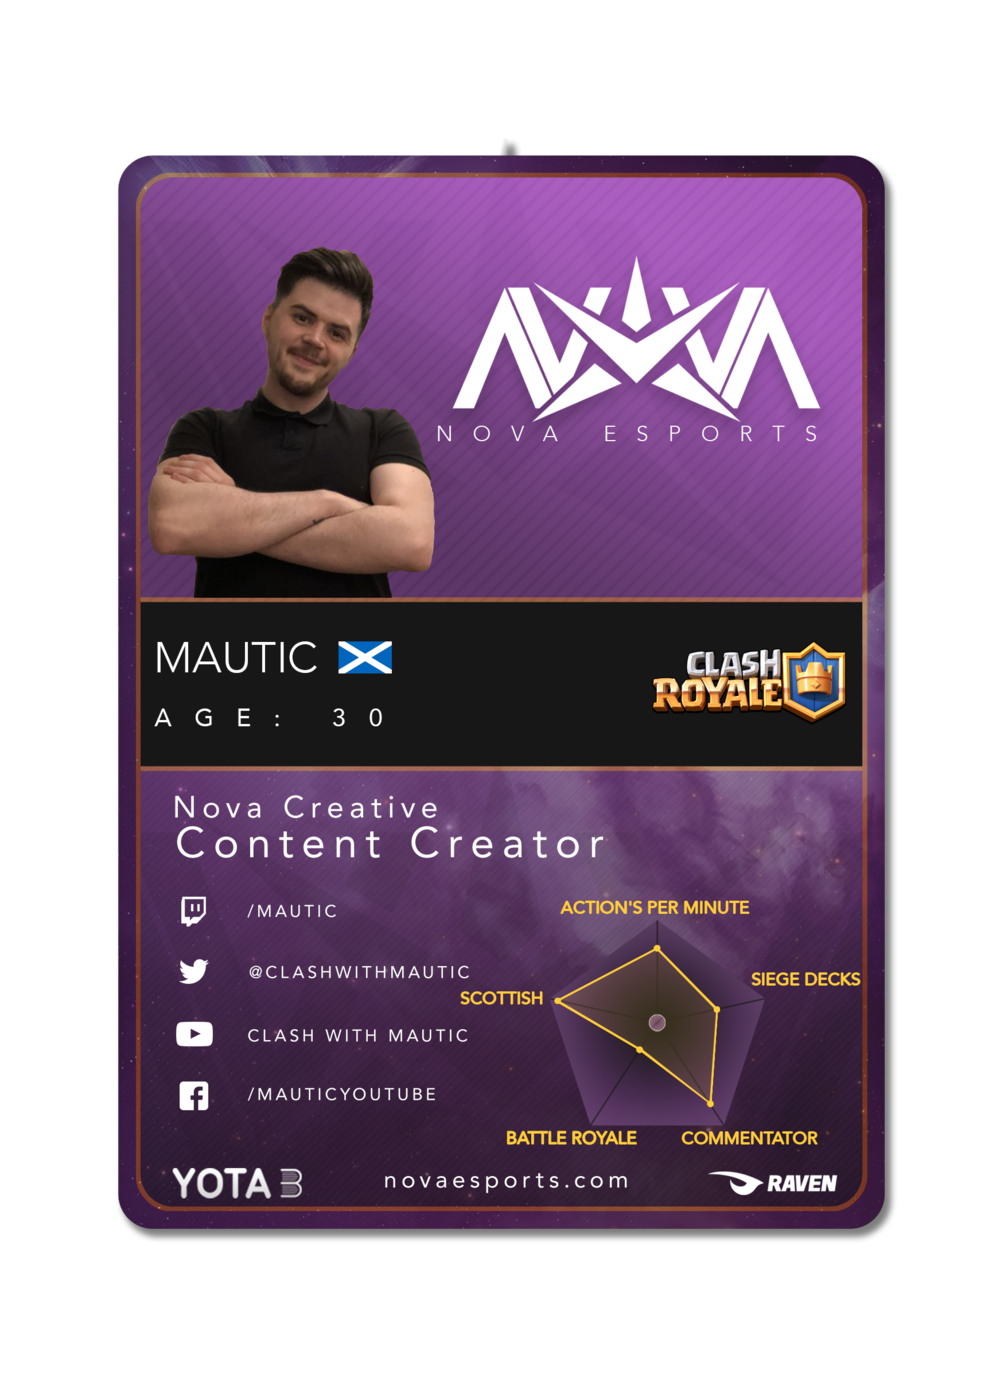 mautic card.png